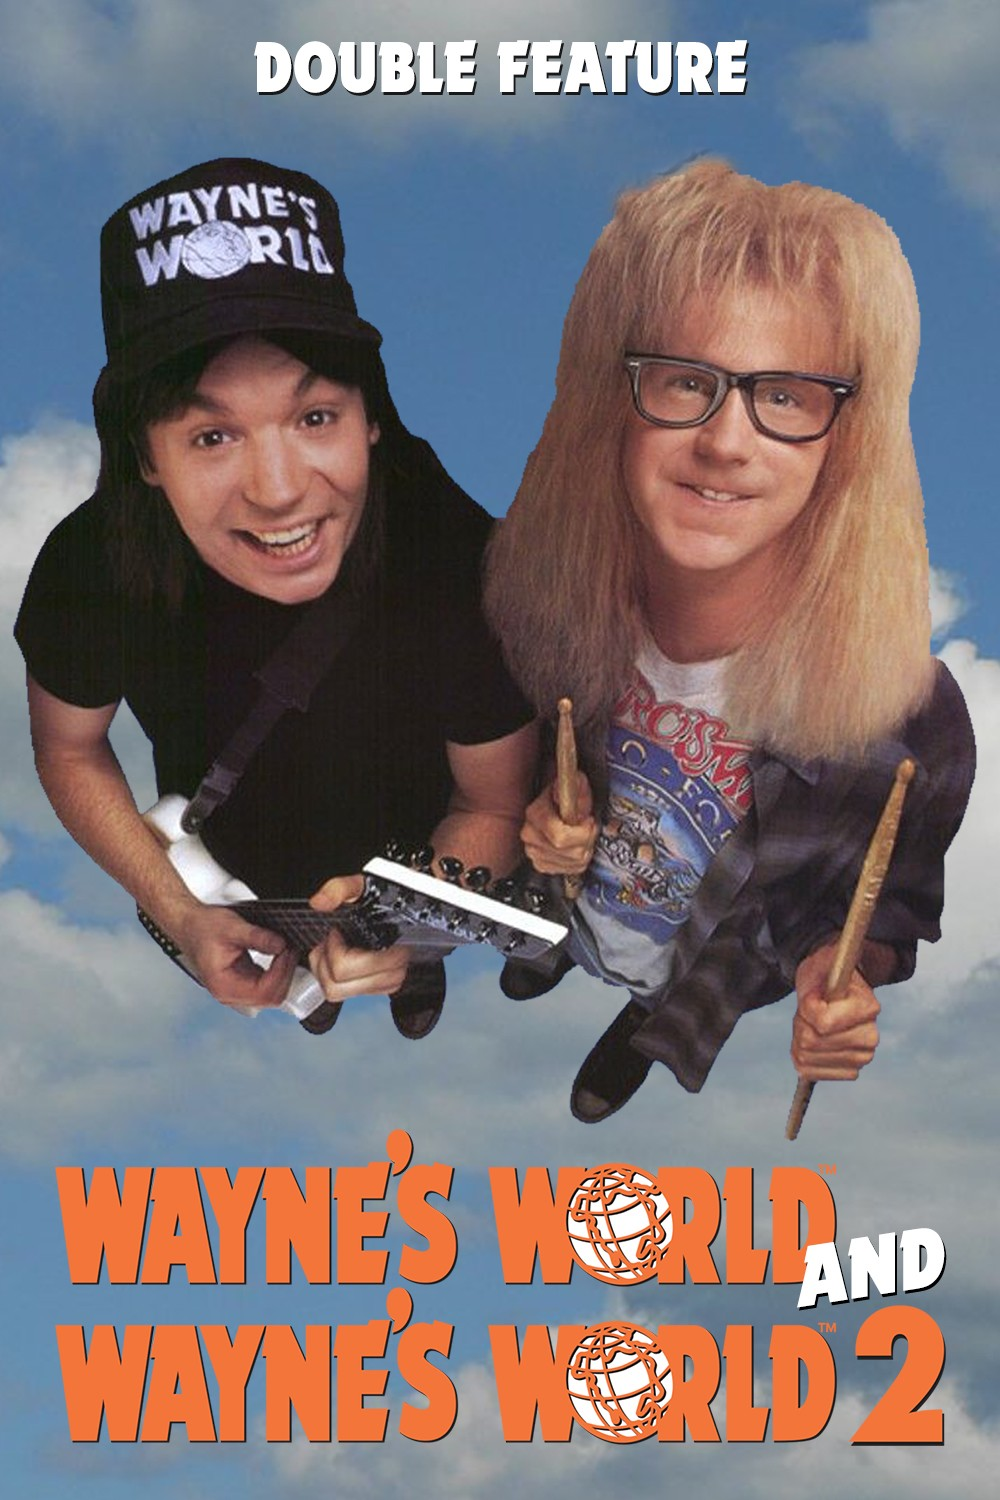 WAYNE'S WORLD + WAYNE'S WORLD 2